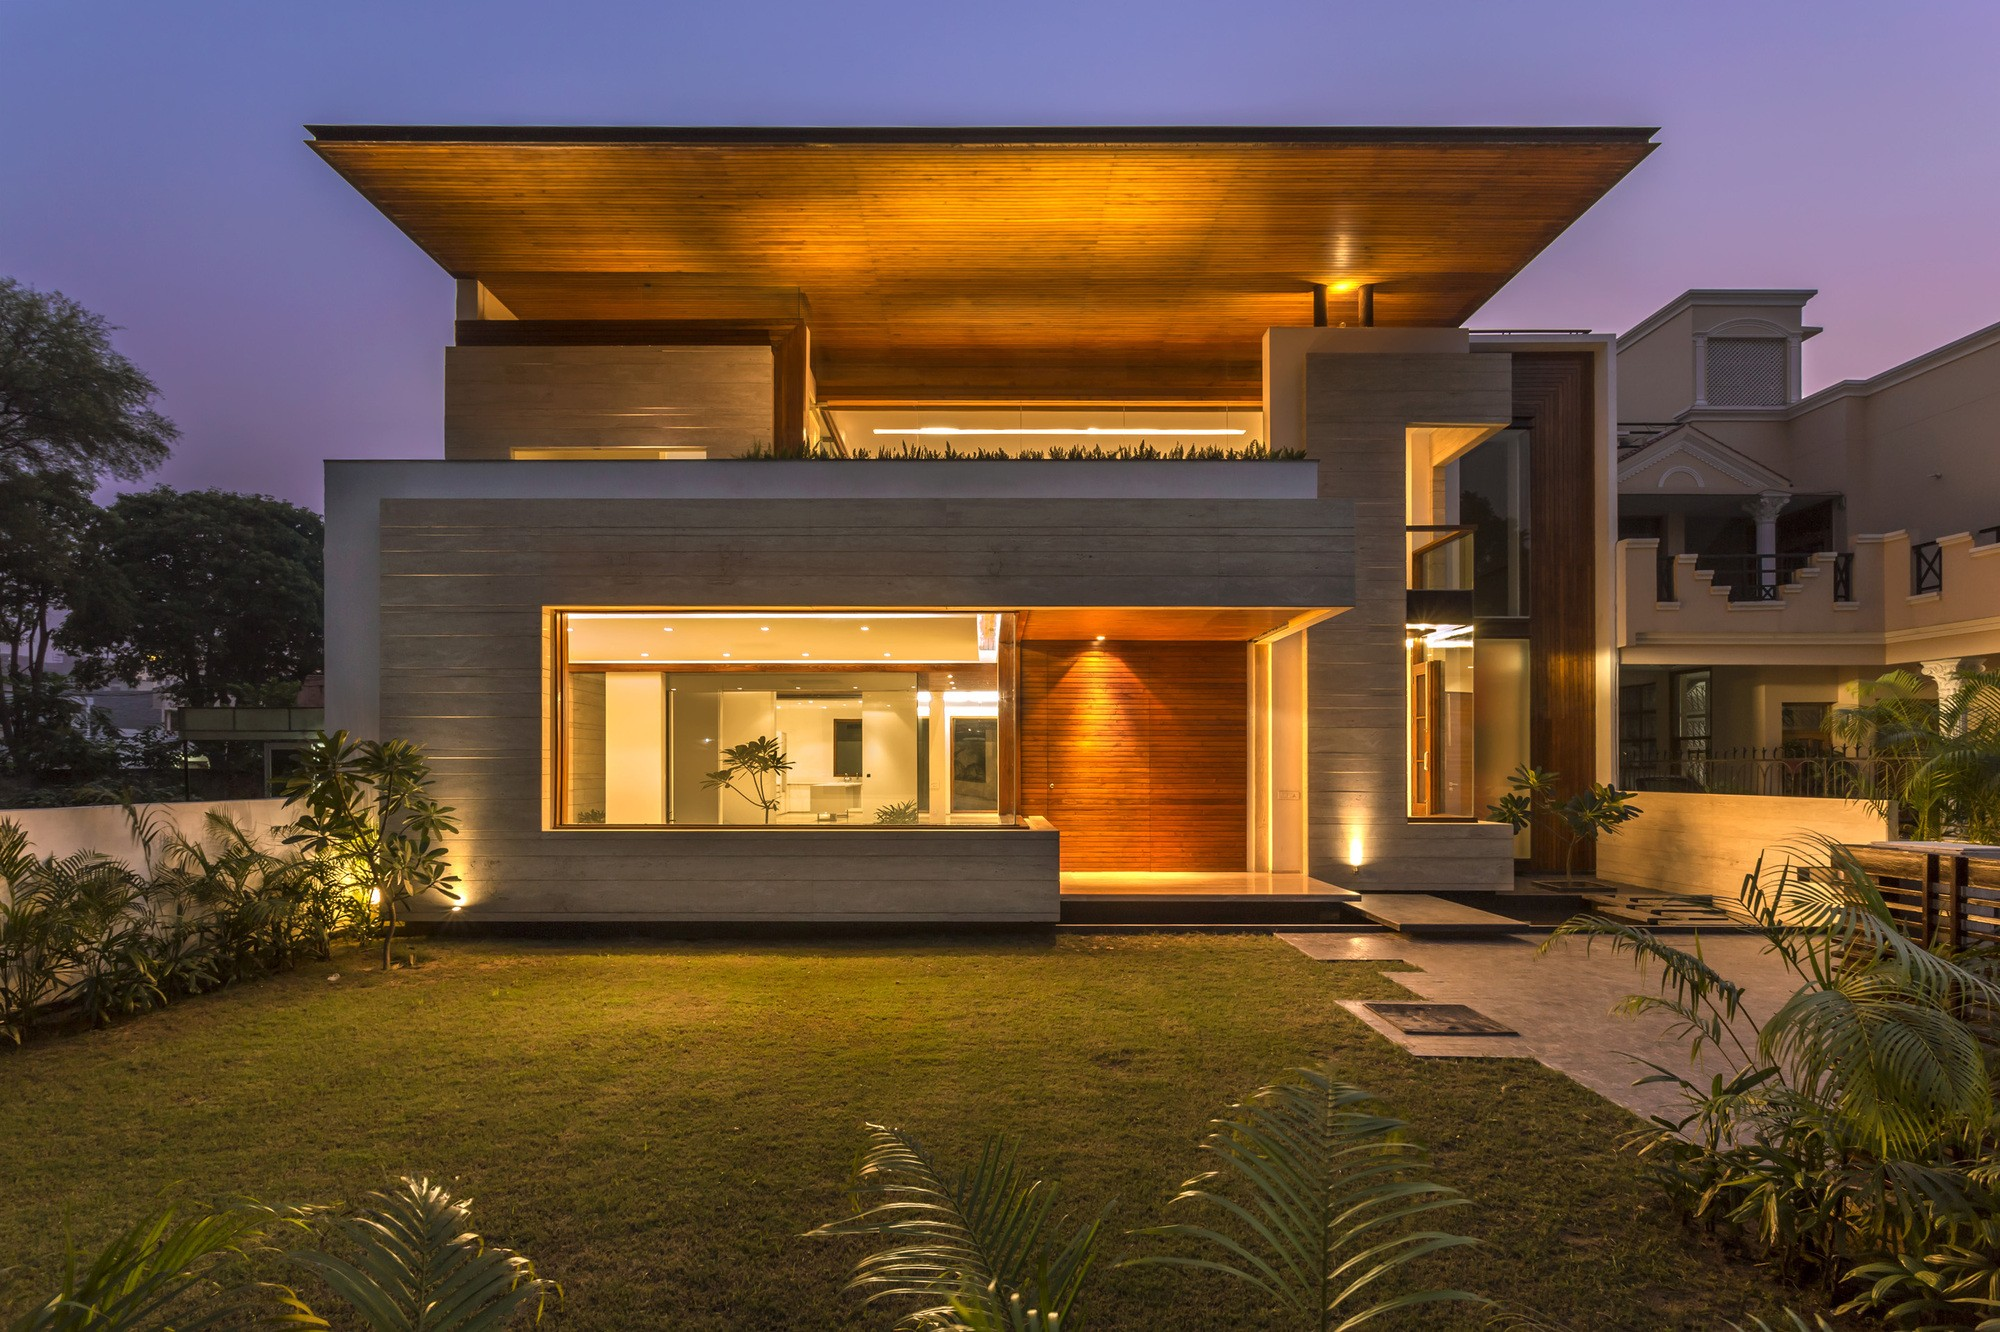 Superb house in mohali punjab india for House outside design in india